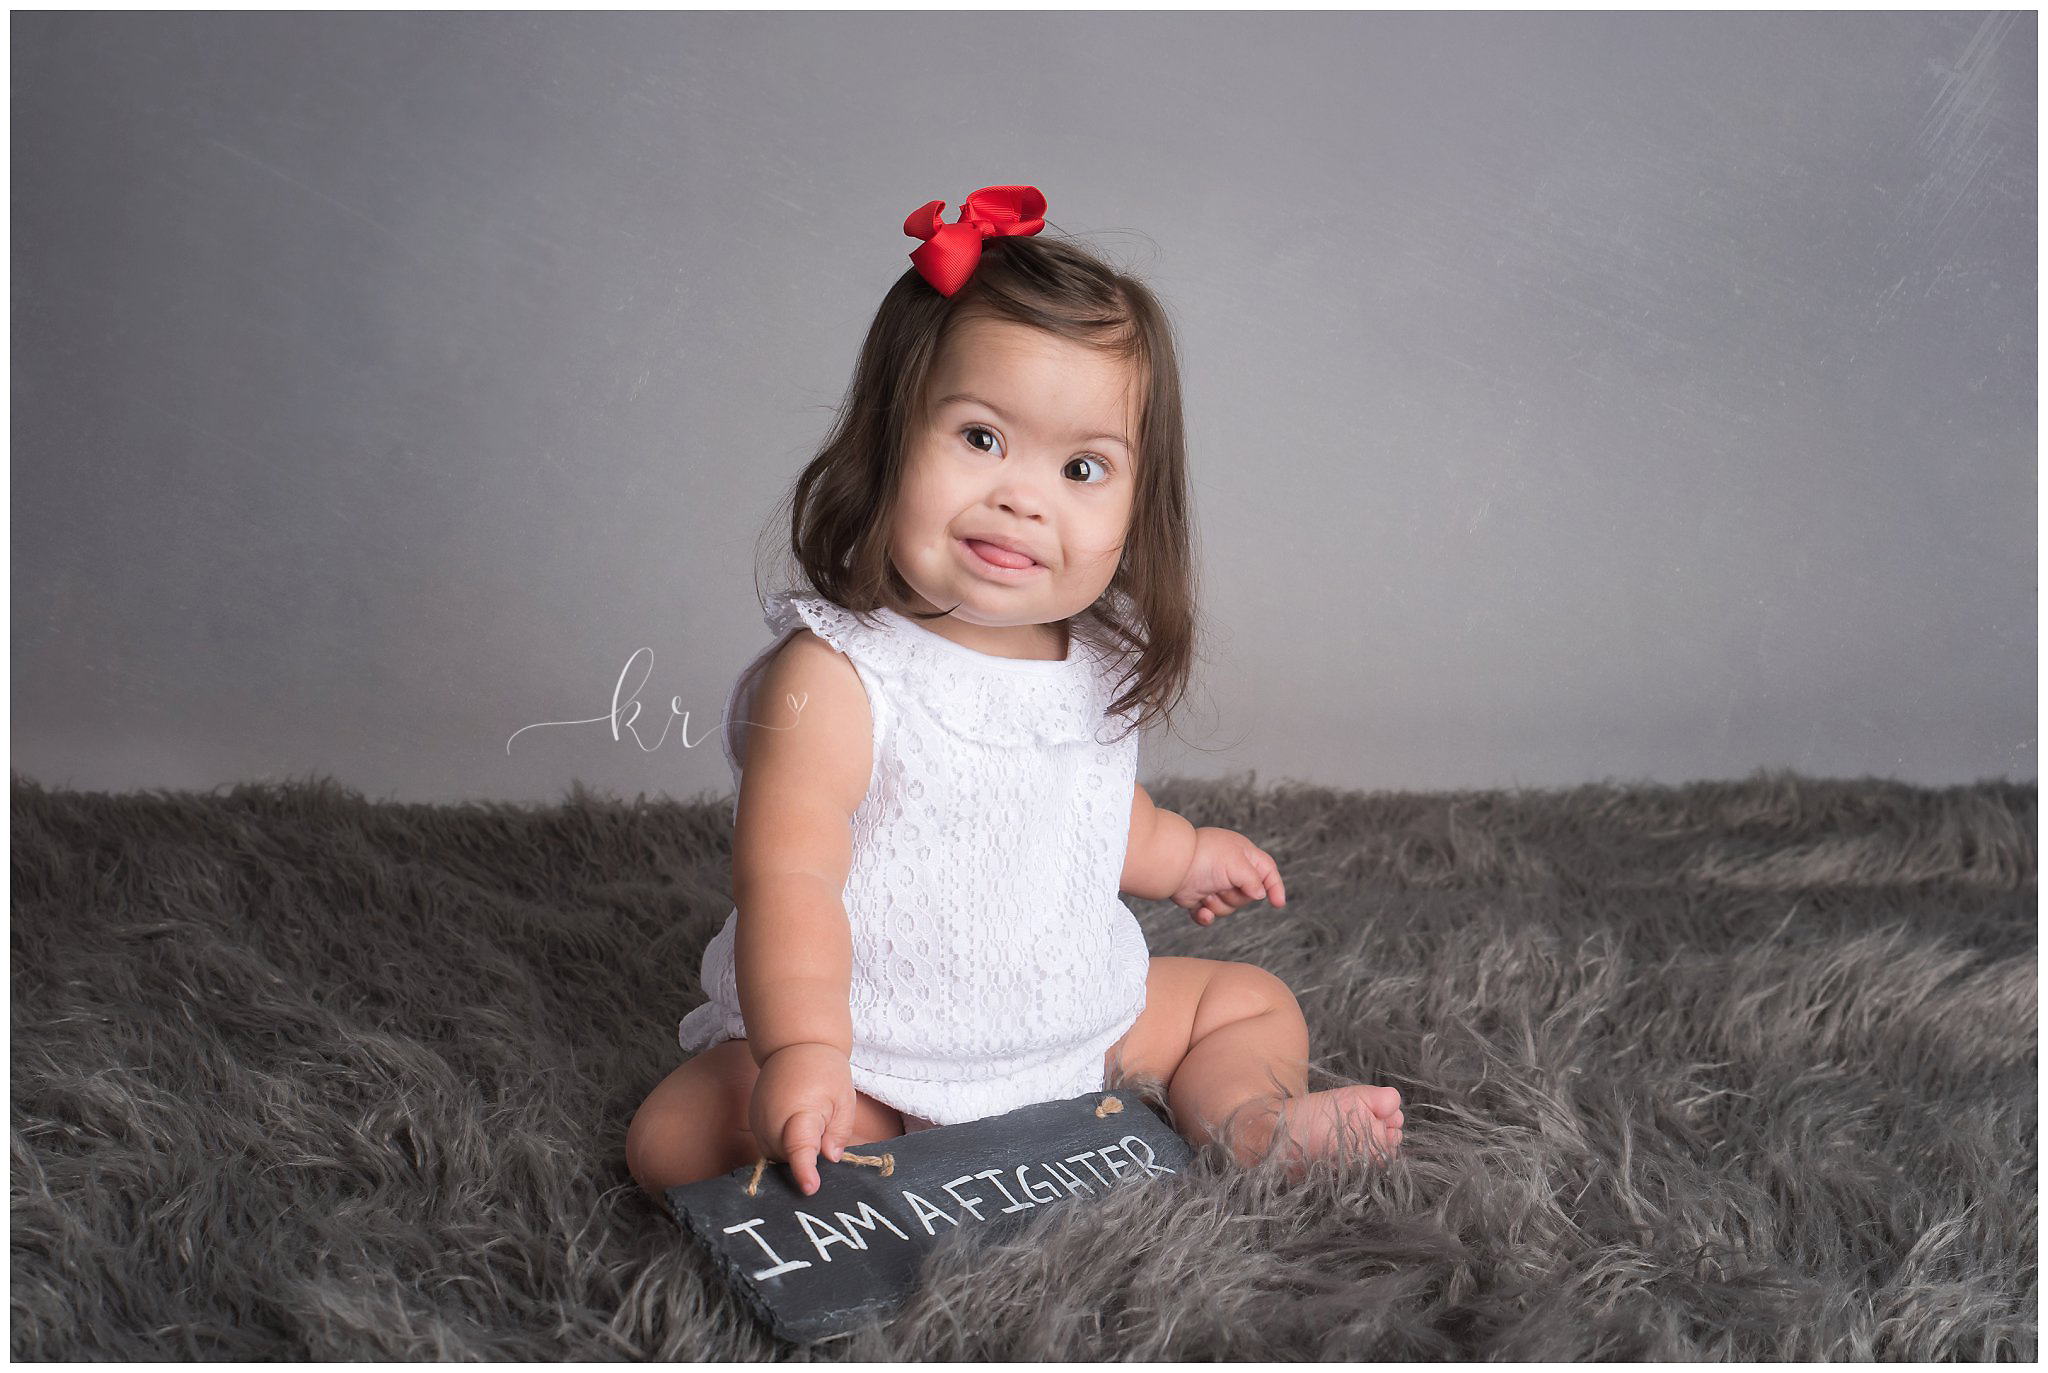 Kathy Rogers Photography_Beautifully Different_Children Photographer in Amherst_Little girl_Down Syndrome_heart surgery_red tutu